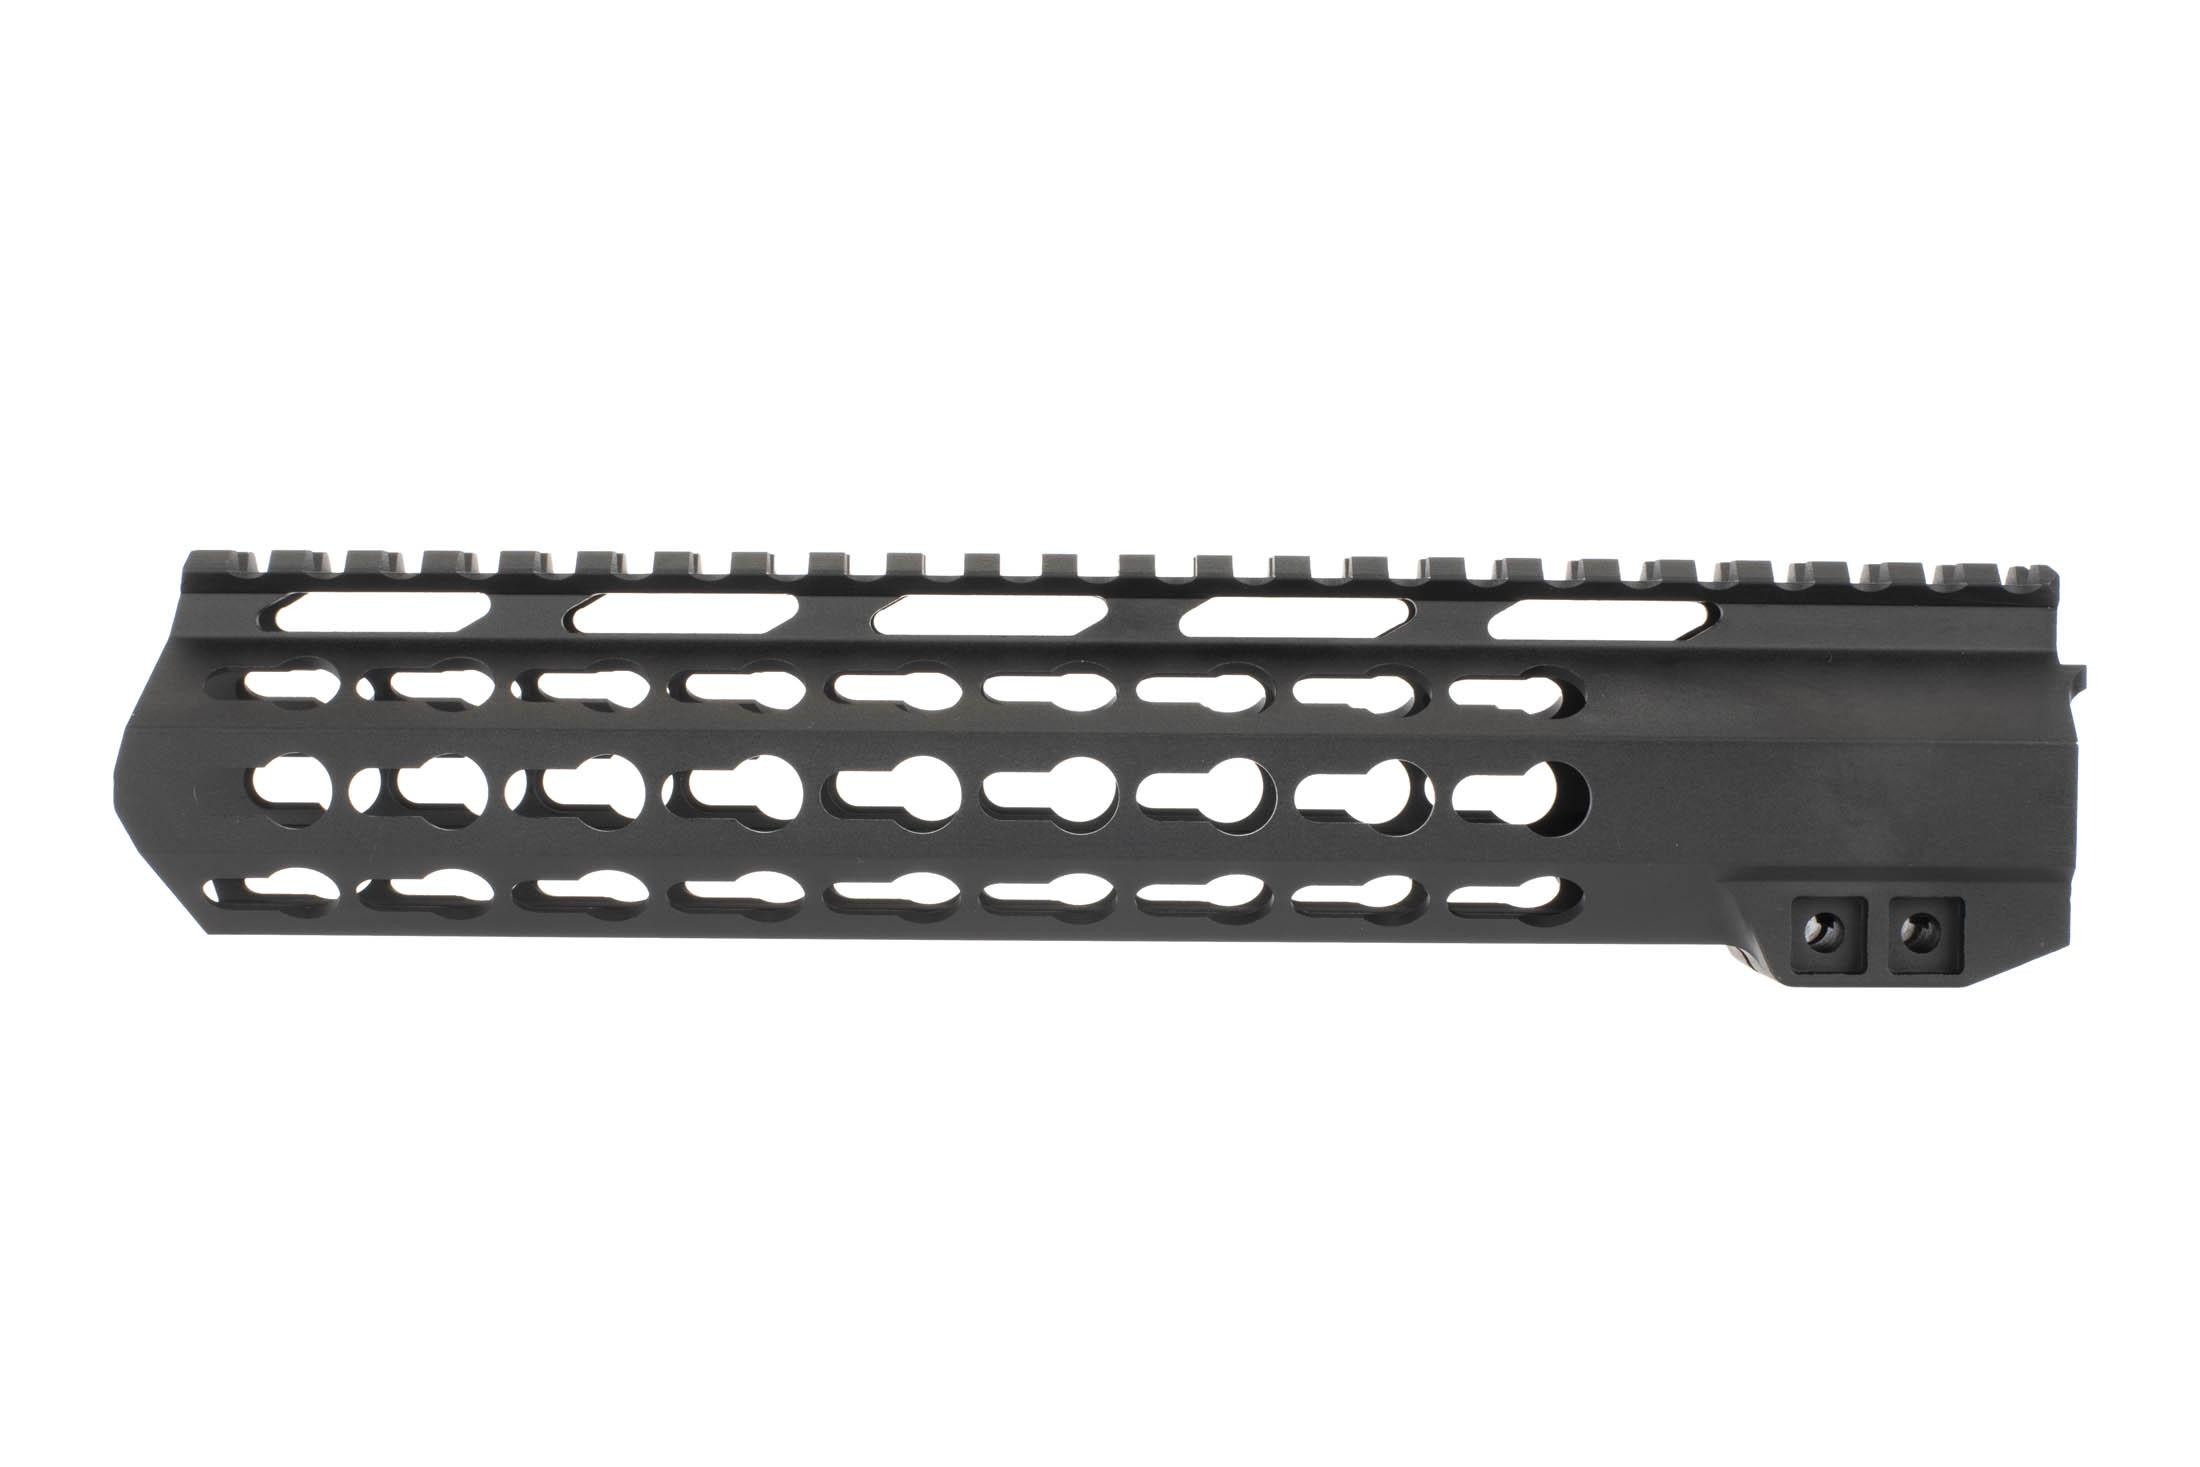 Aim Sports 10in free float KeyMod AR-15 Handguard features a 2nd generation mounting system for secure mounting